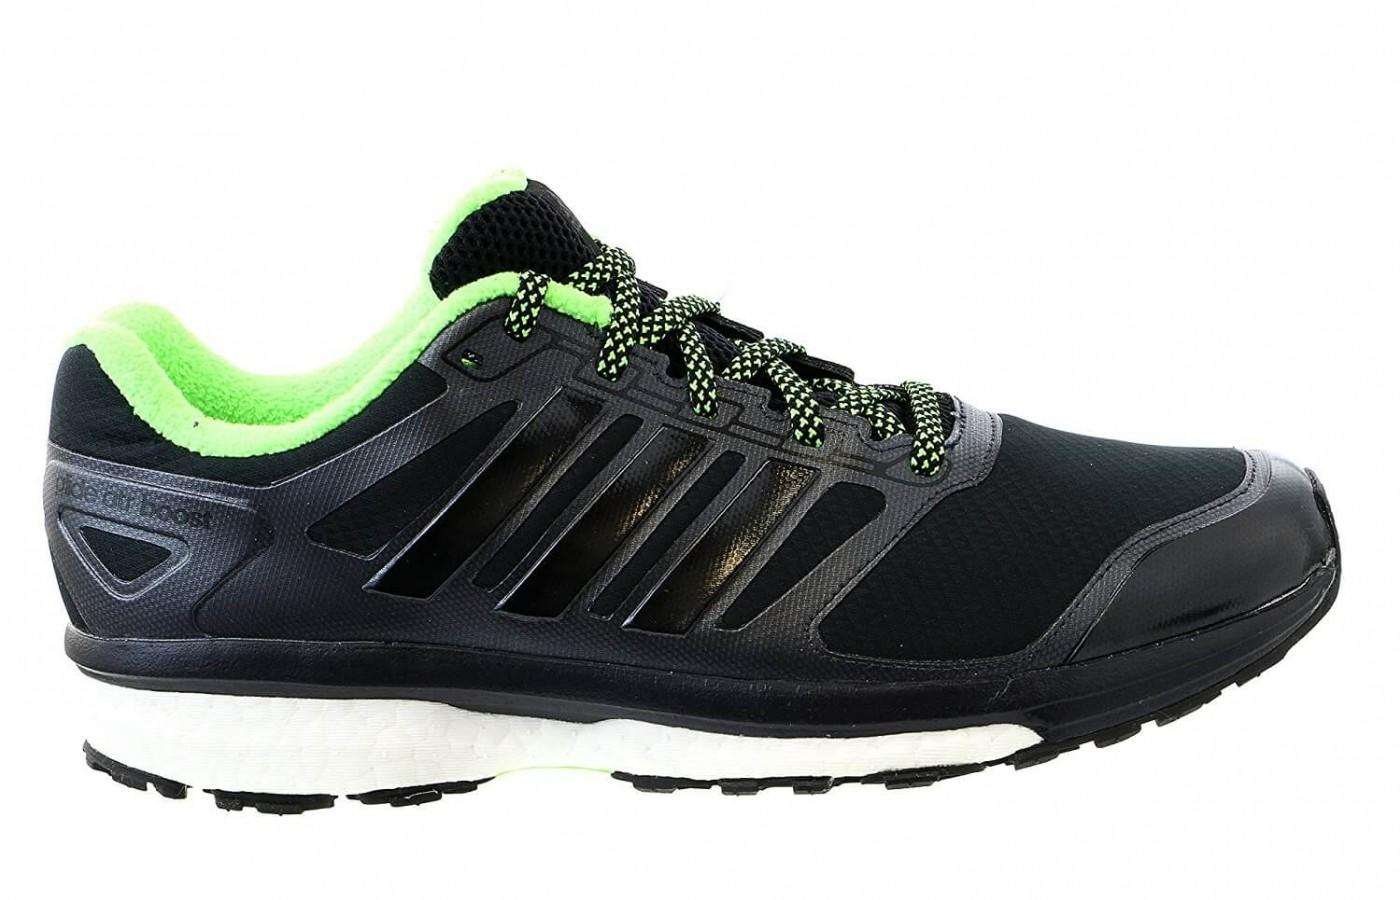 Adidas Supernova Glide ATR - left to right view